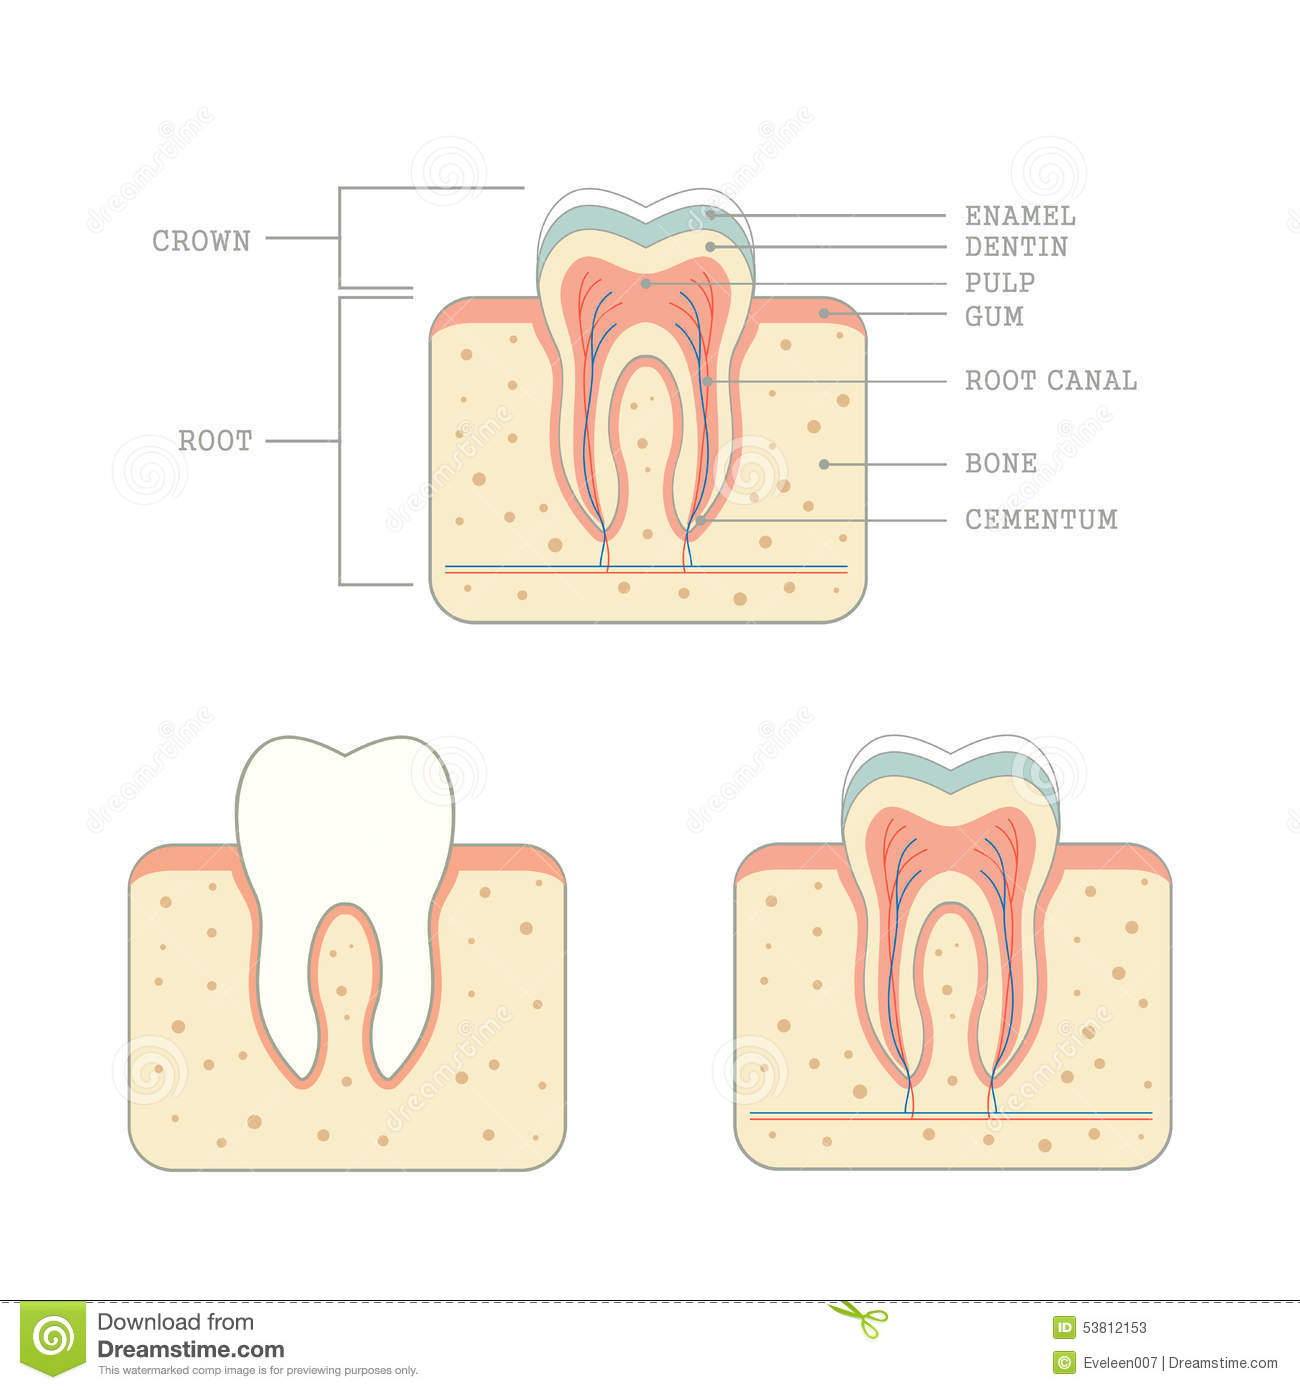 Human tooth anatomy stock vector. Illustration of medical - 53812153